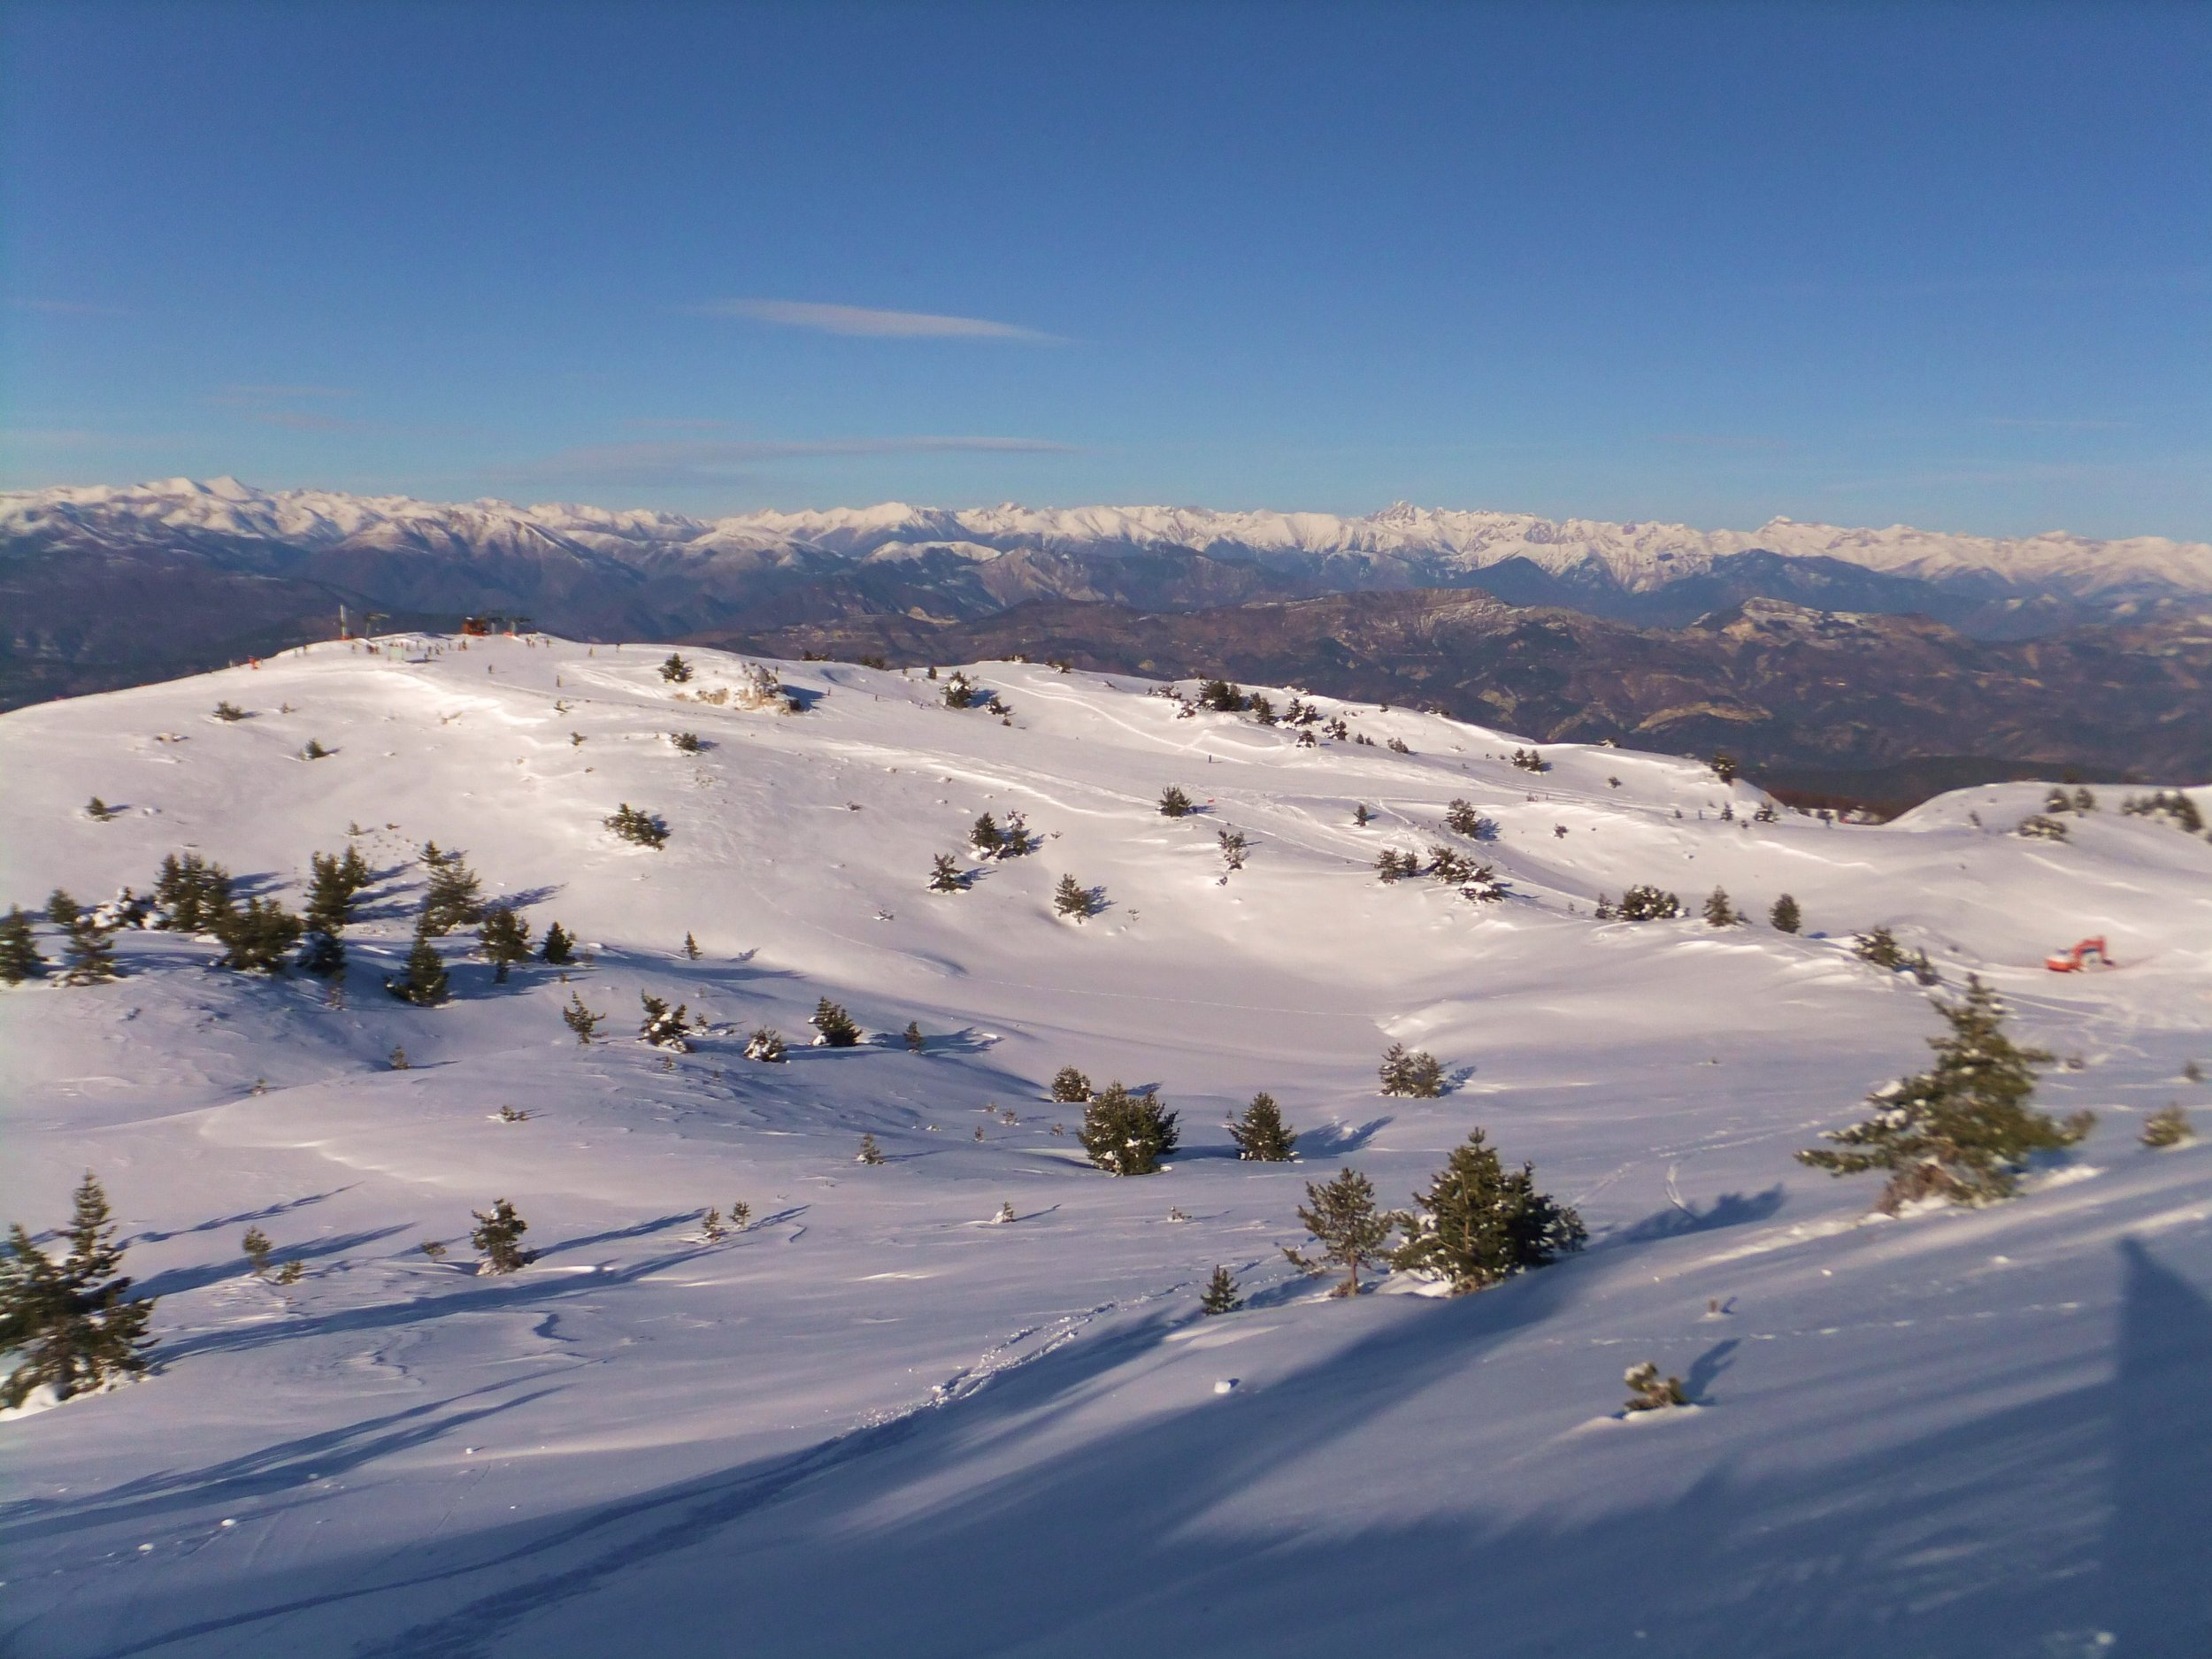 Greolières_Les_Neiges,_View_to_the_Alps_-_panoramio.jpg